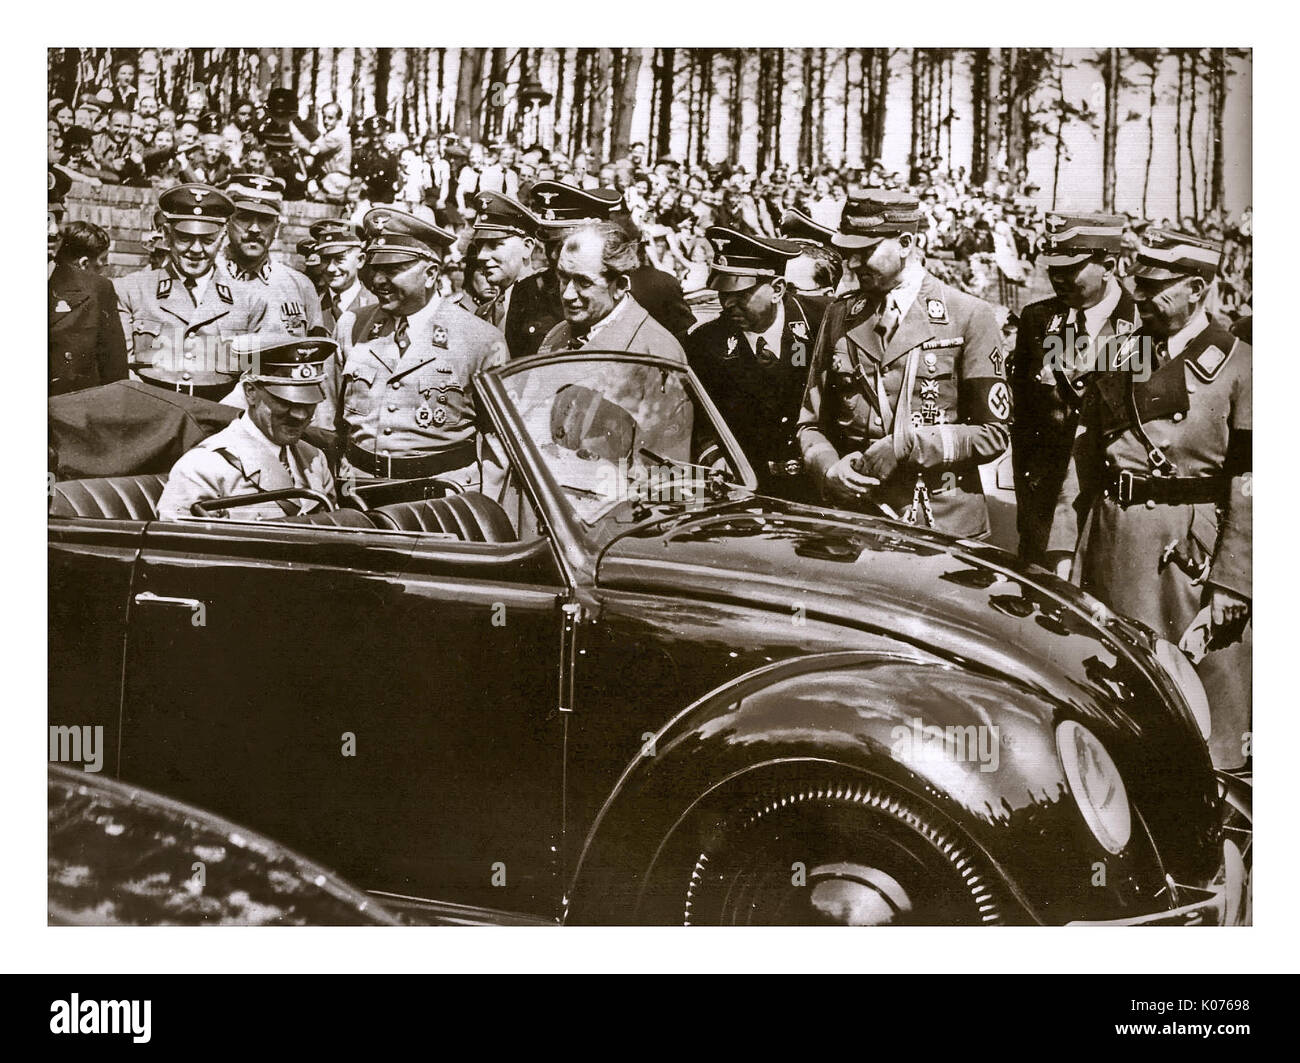 adolf hitler mit dr porsche an den start von des. Black Bedroom Furniture Sets. Home Design Ideas